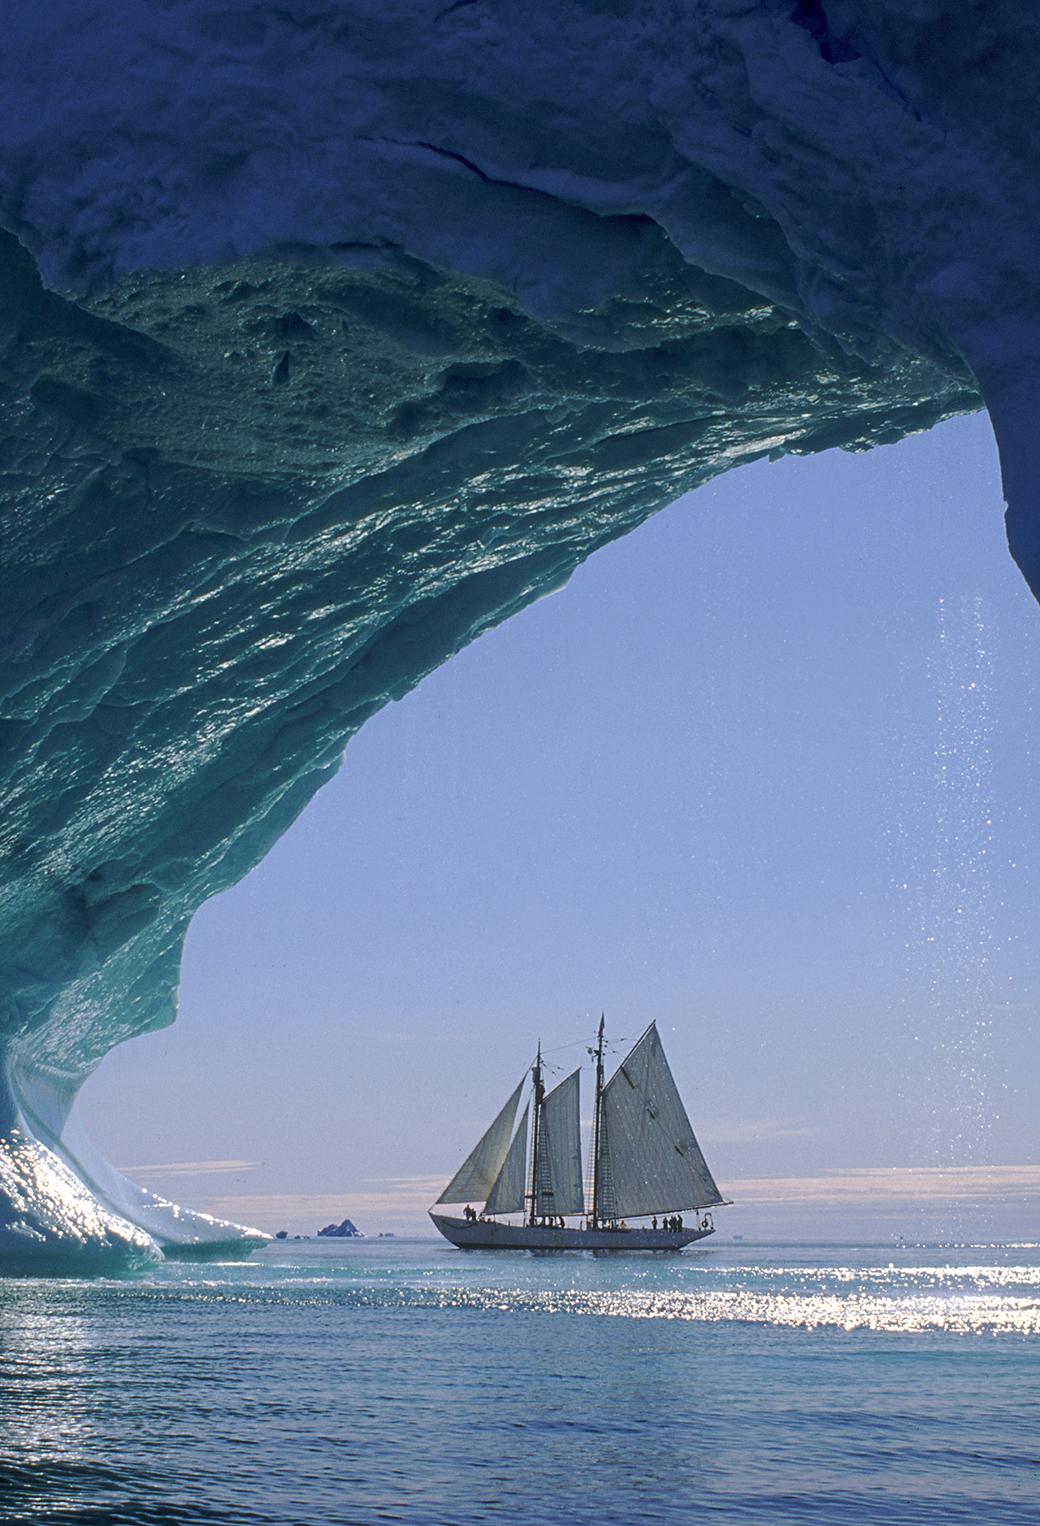 Sailboat IceBerg 3Wallpapers iPhone Parallax Sailboat IceBerg